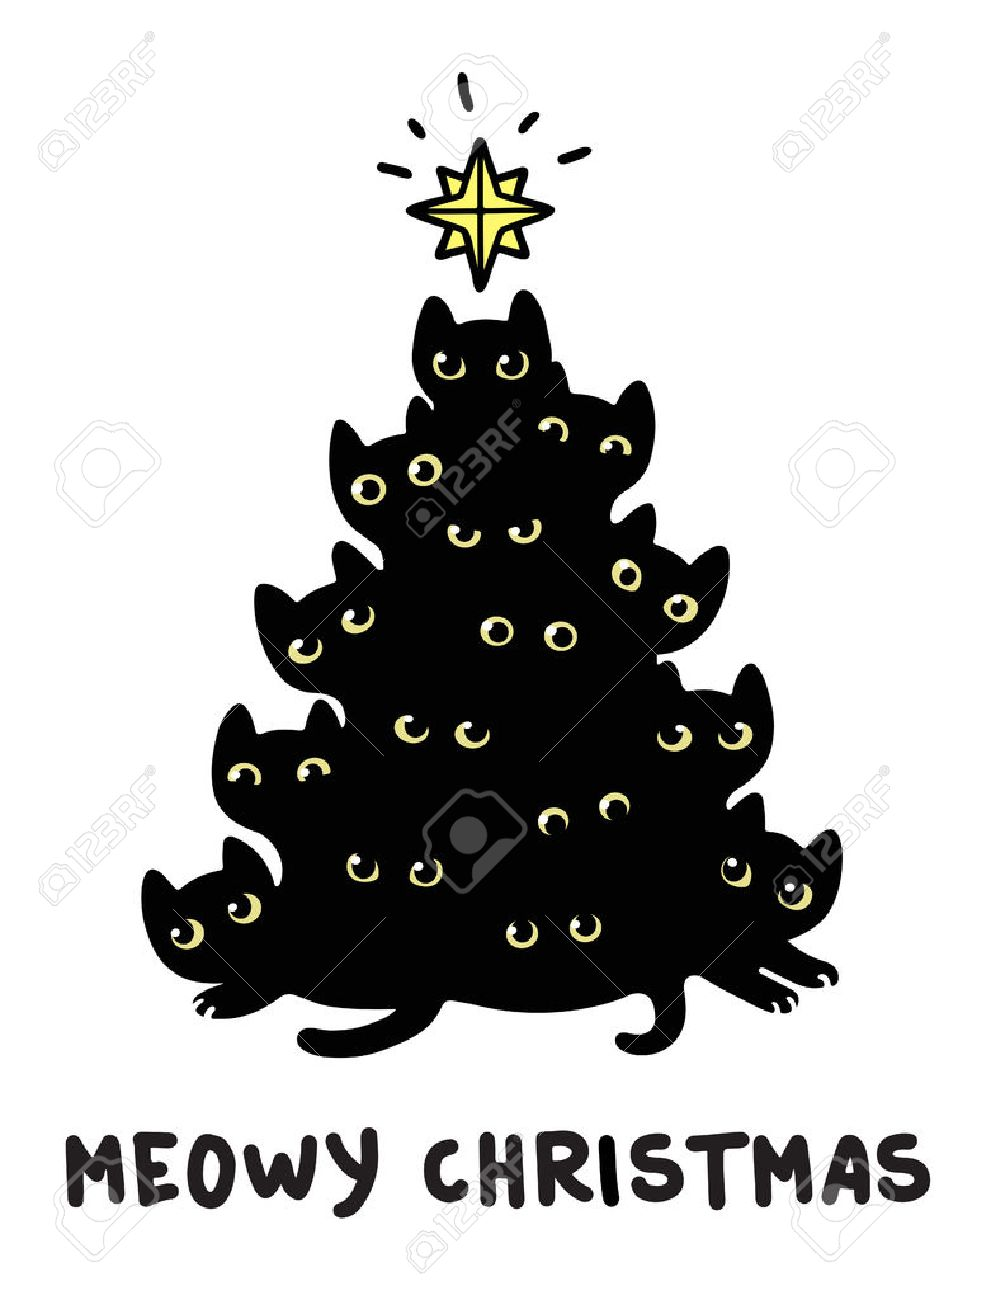 cute cartoon black cats christmas tree silhouette with text meowy christmas funny greeting card vector